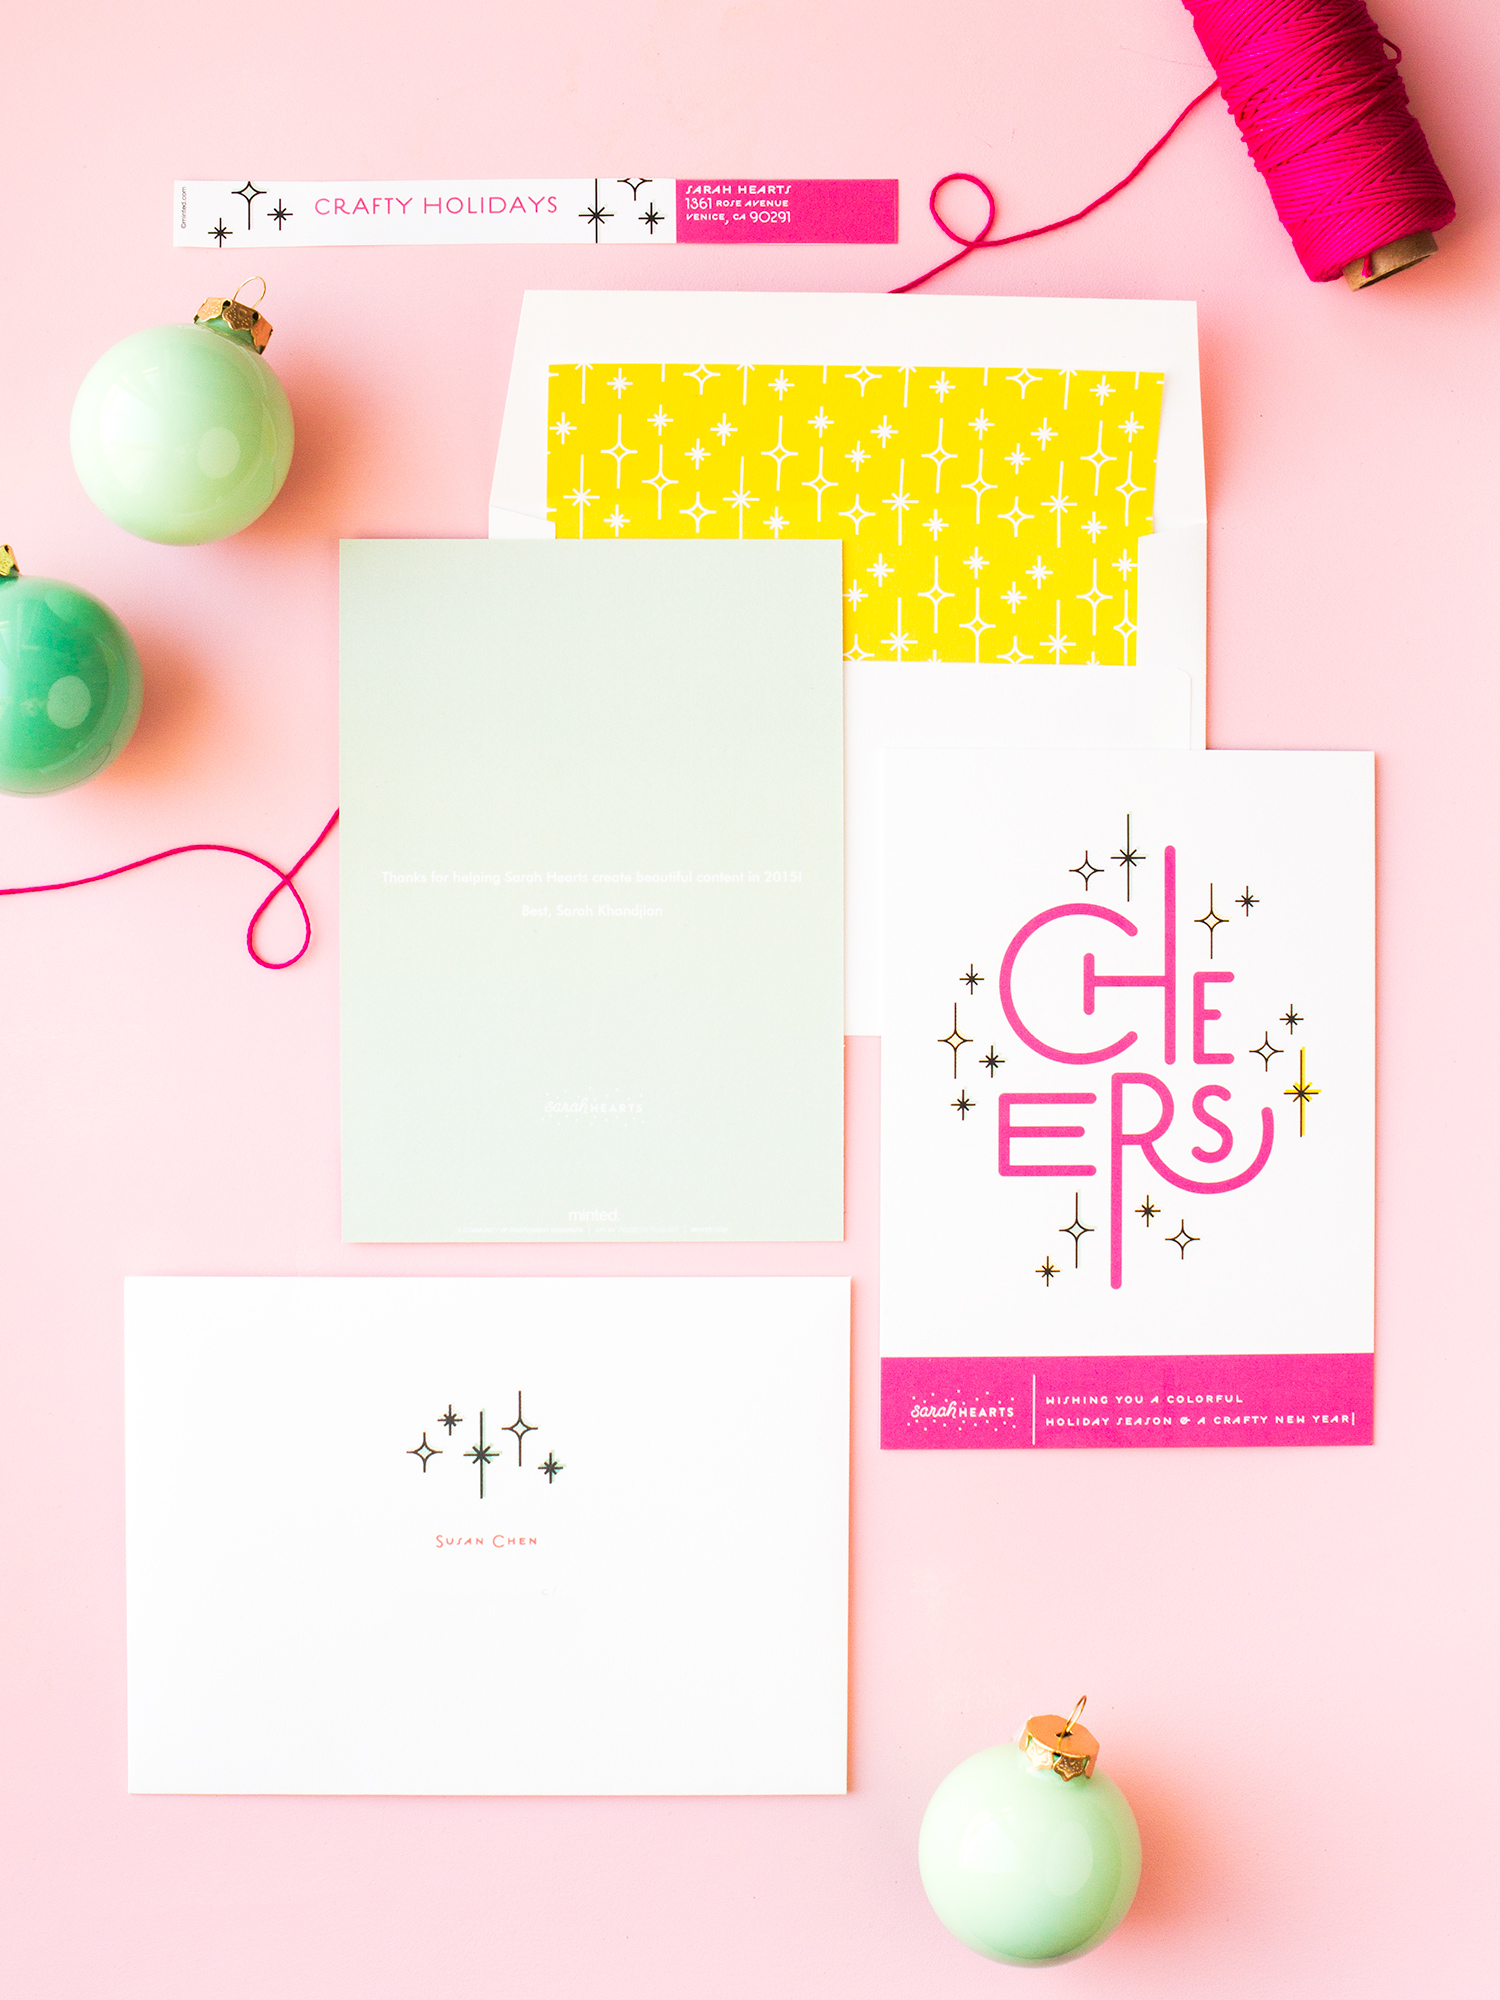 Create custom holiday cards for your small business or blog this Christmas to say thanks to your clients, sponsors, and friends for making it a great year!